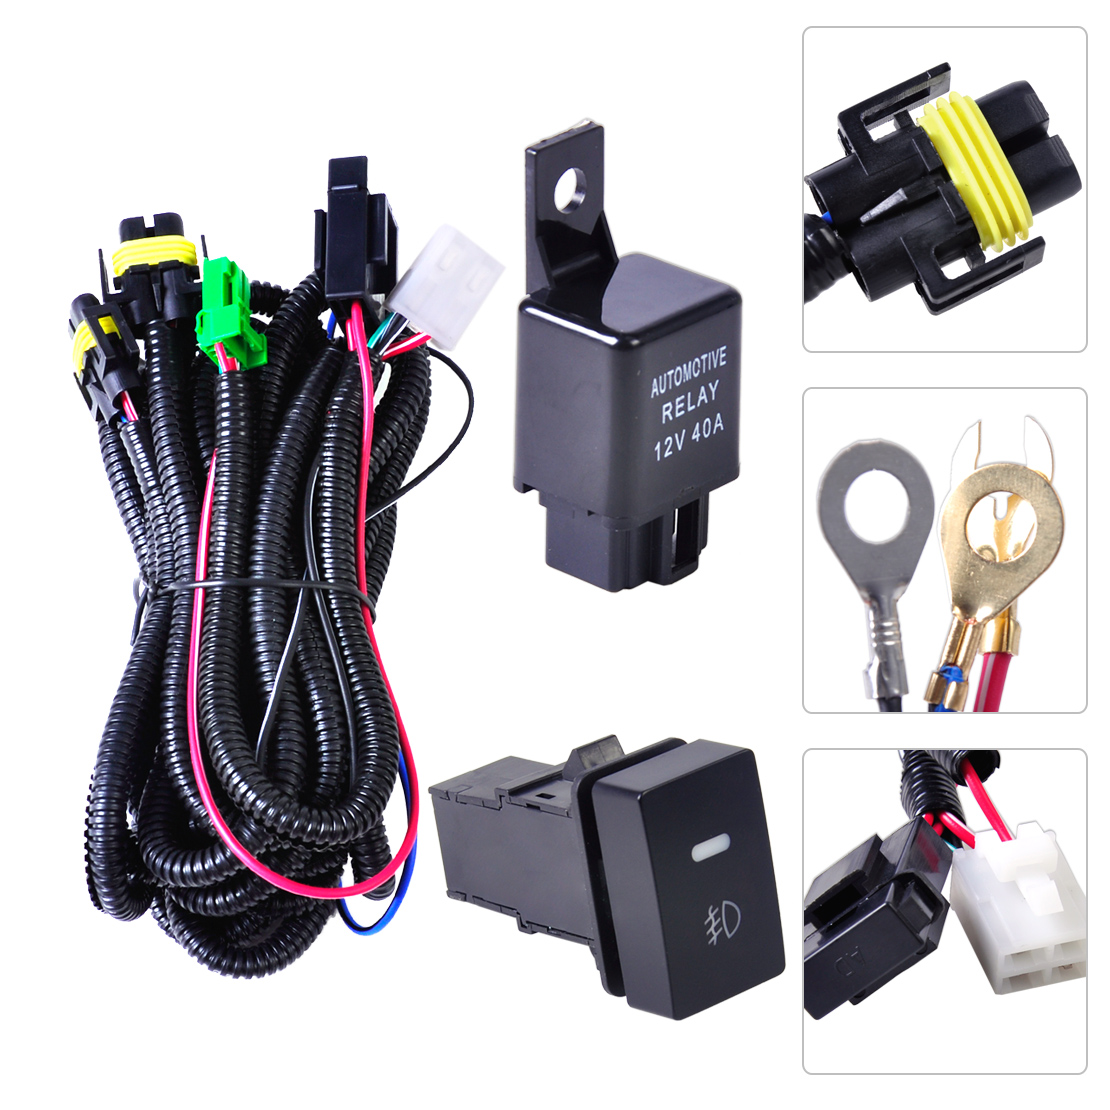 for ford fog light wiring harness sockets wire led indicators rh ebay com Universal Ford Wiring Harness Ford Escape Wiring Harness Diagram